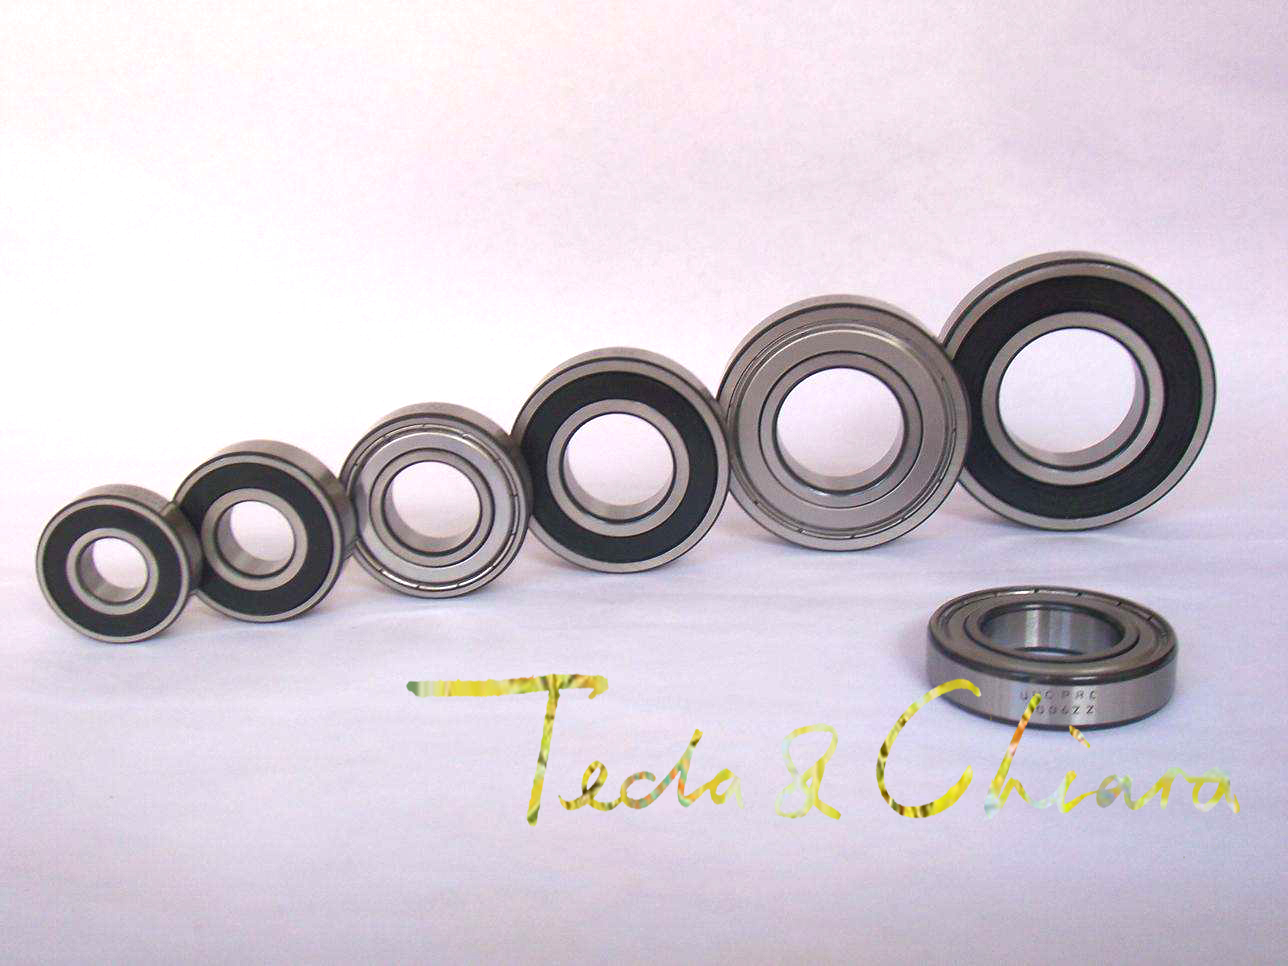 608-2RS 8x22x7mm ABEC1 Thin-wall Shielded Deep Groove Ball Bearing 10